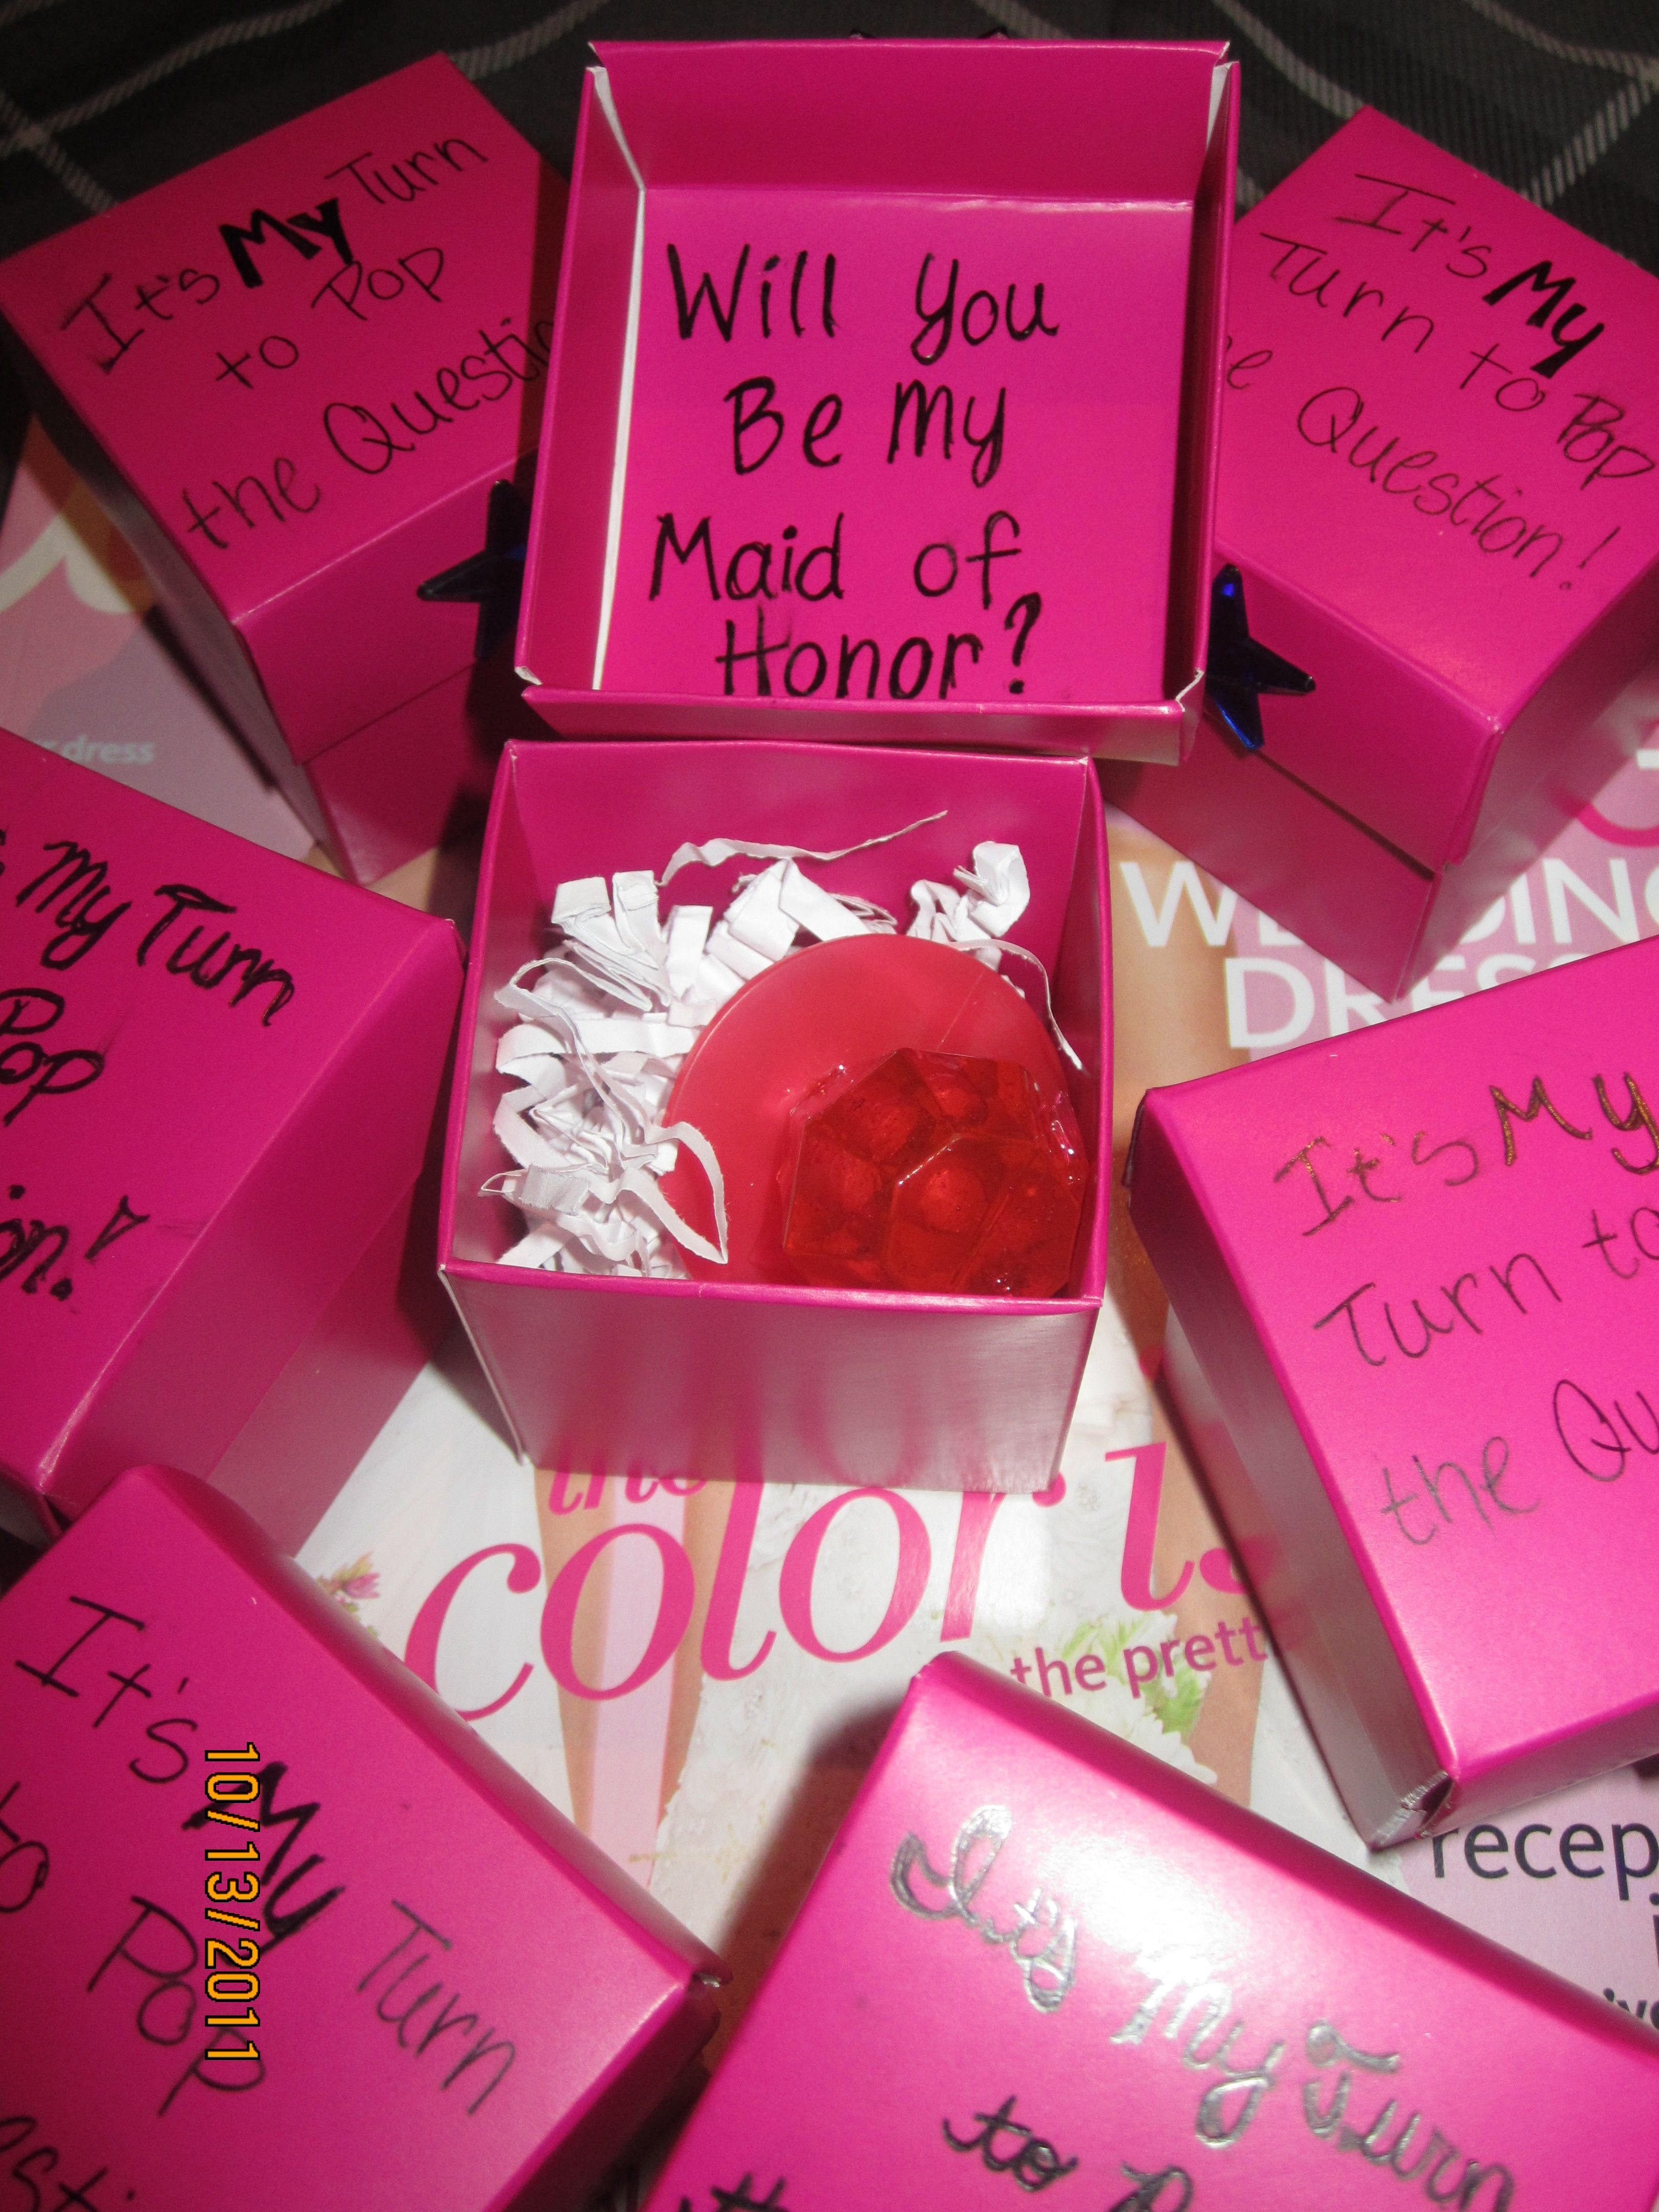 This is how I asked my bridal party: Outside of box \